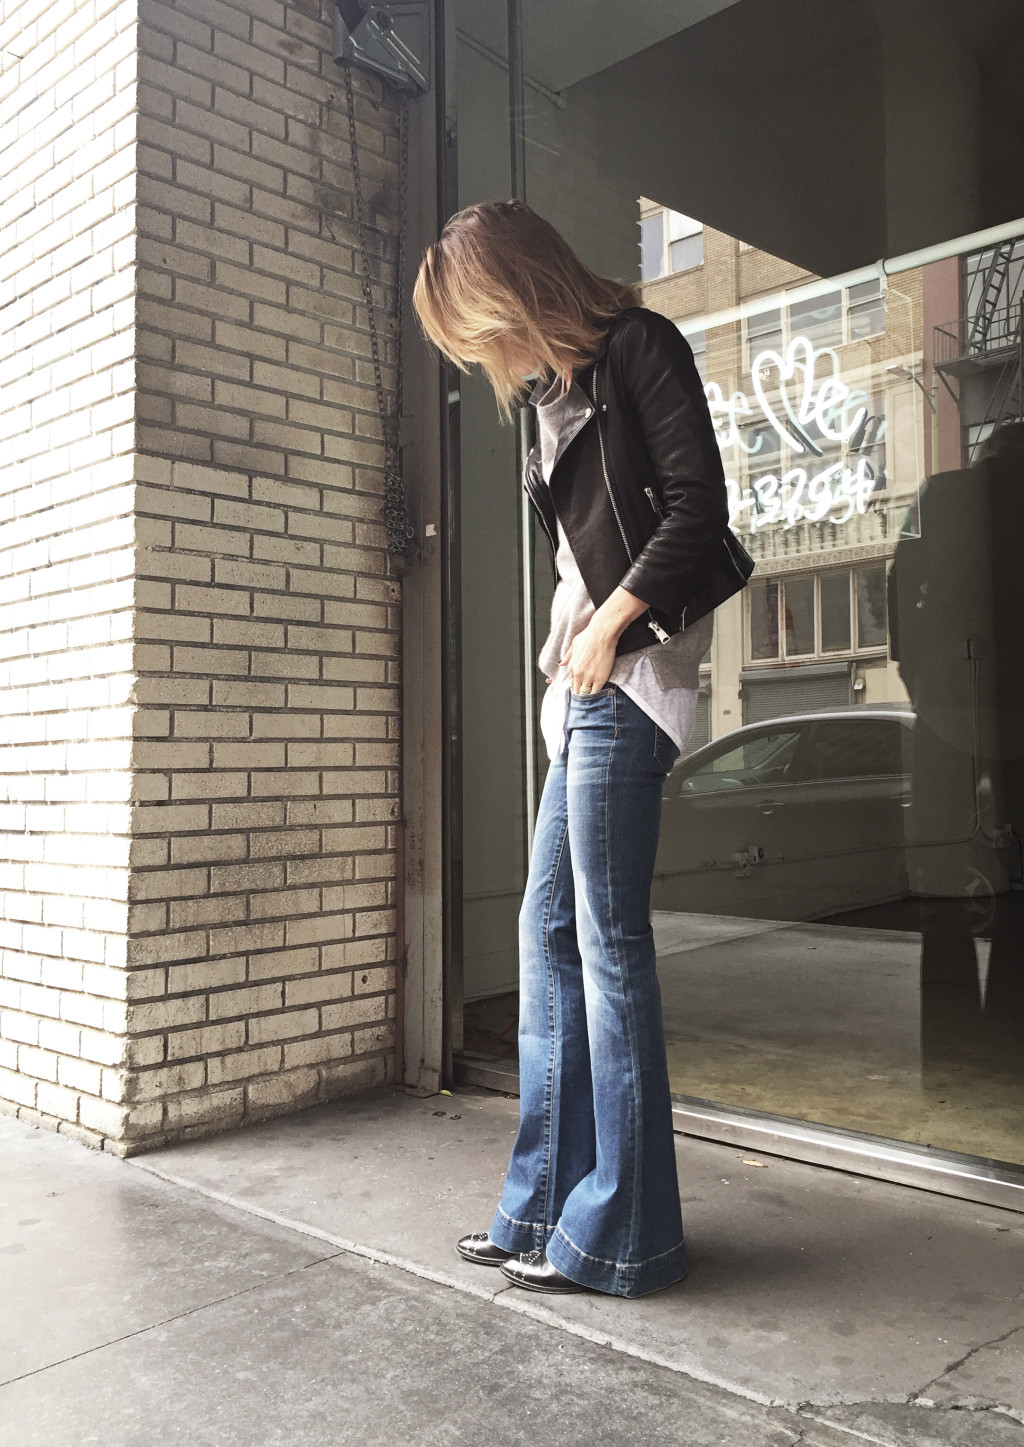 Anine Bing is wearing well worn flare jeans from her own collection